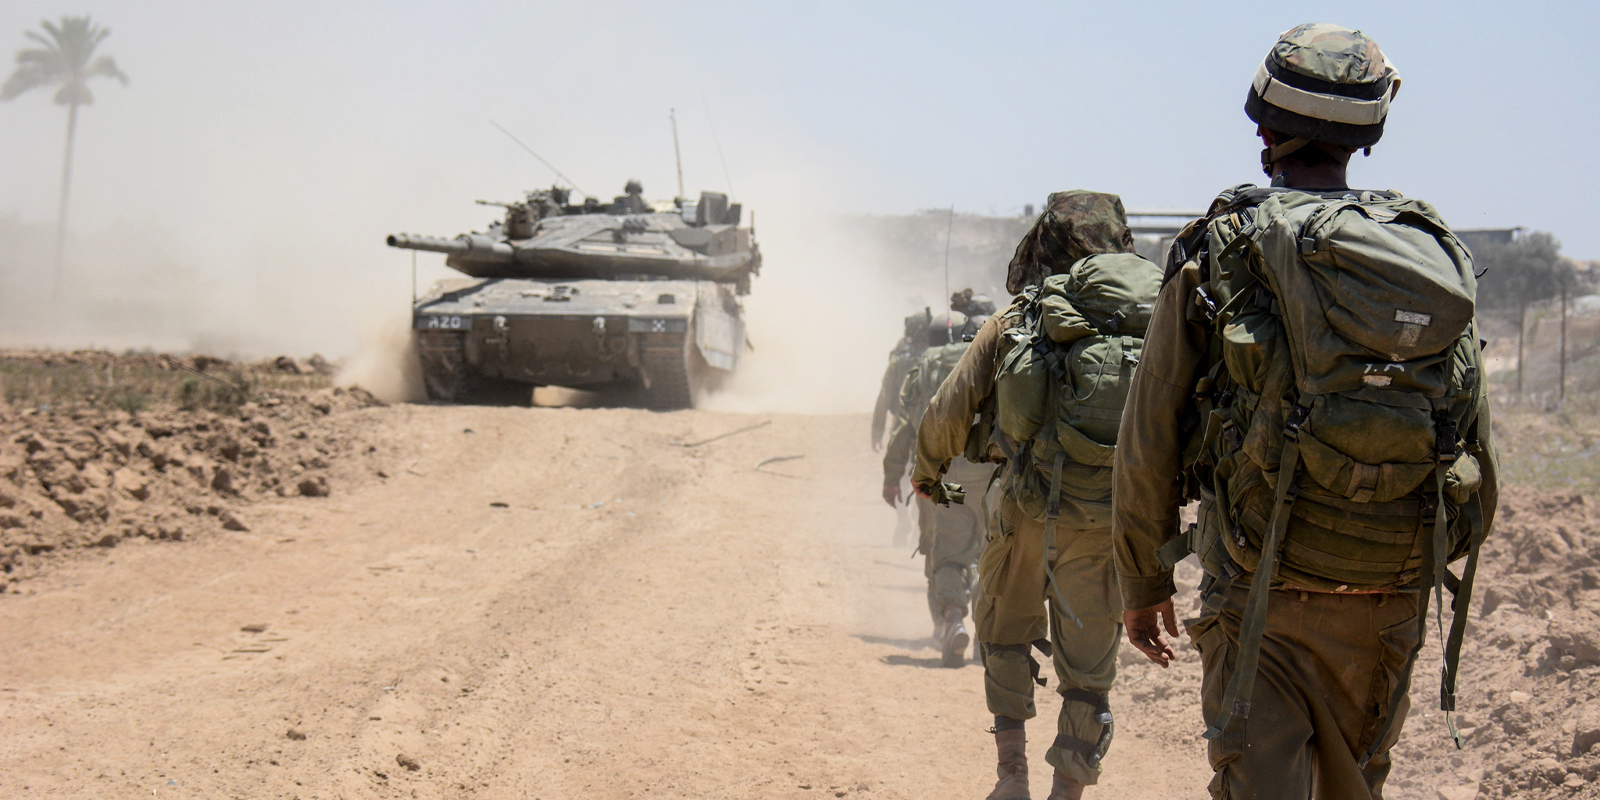 IDF soldiers operating in Gaza